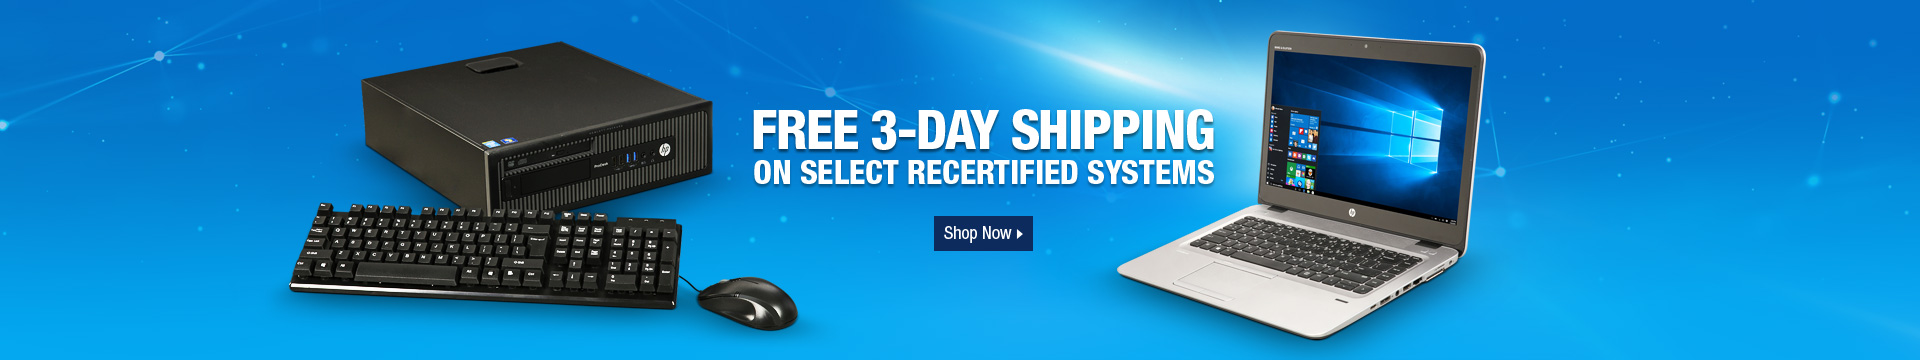 Refurbished Electronics, Refurbished Computers, Refurbished Laptops